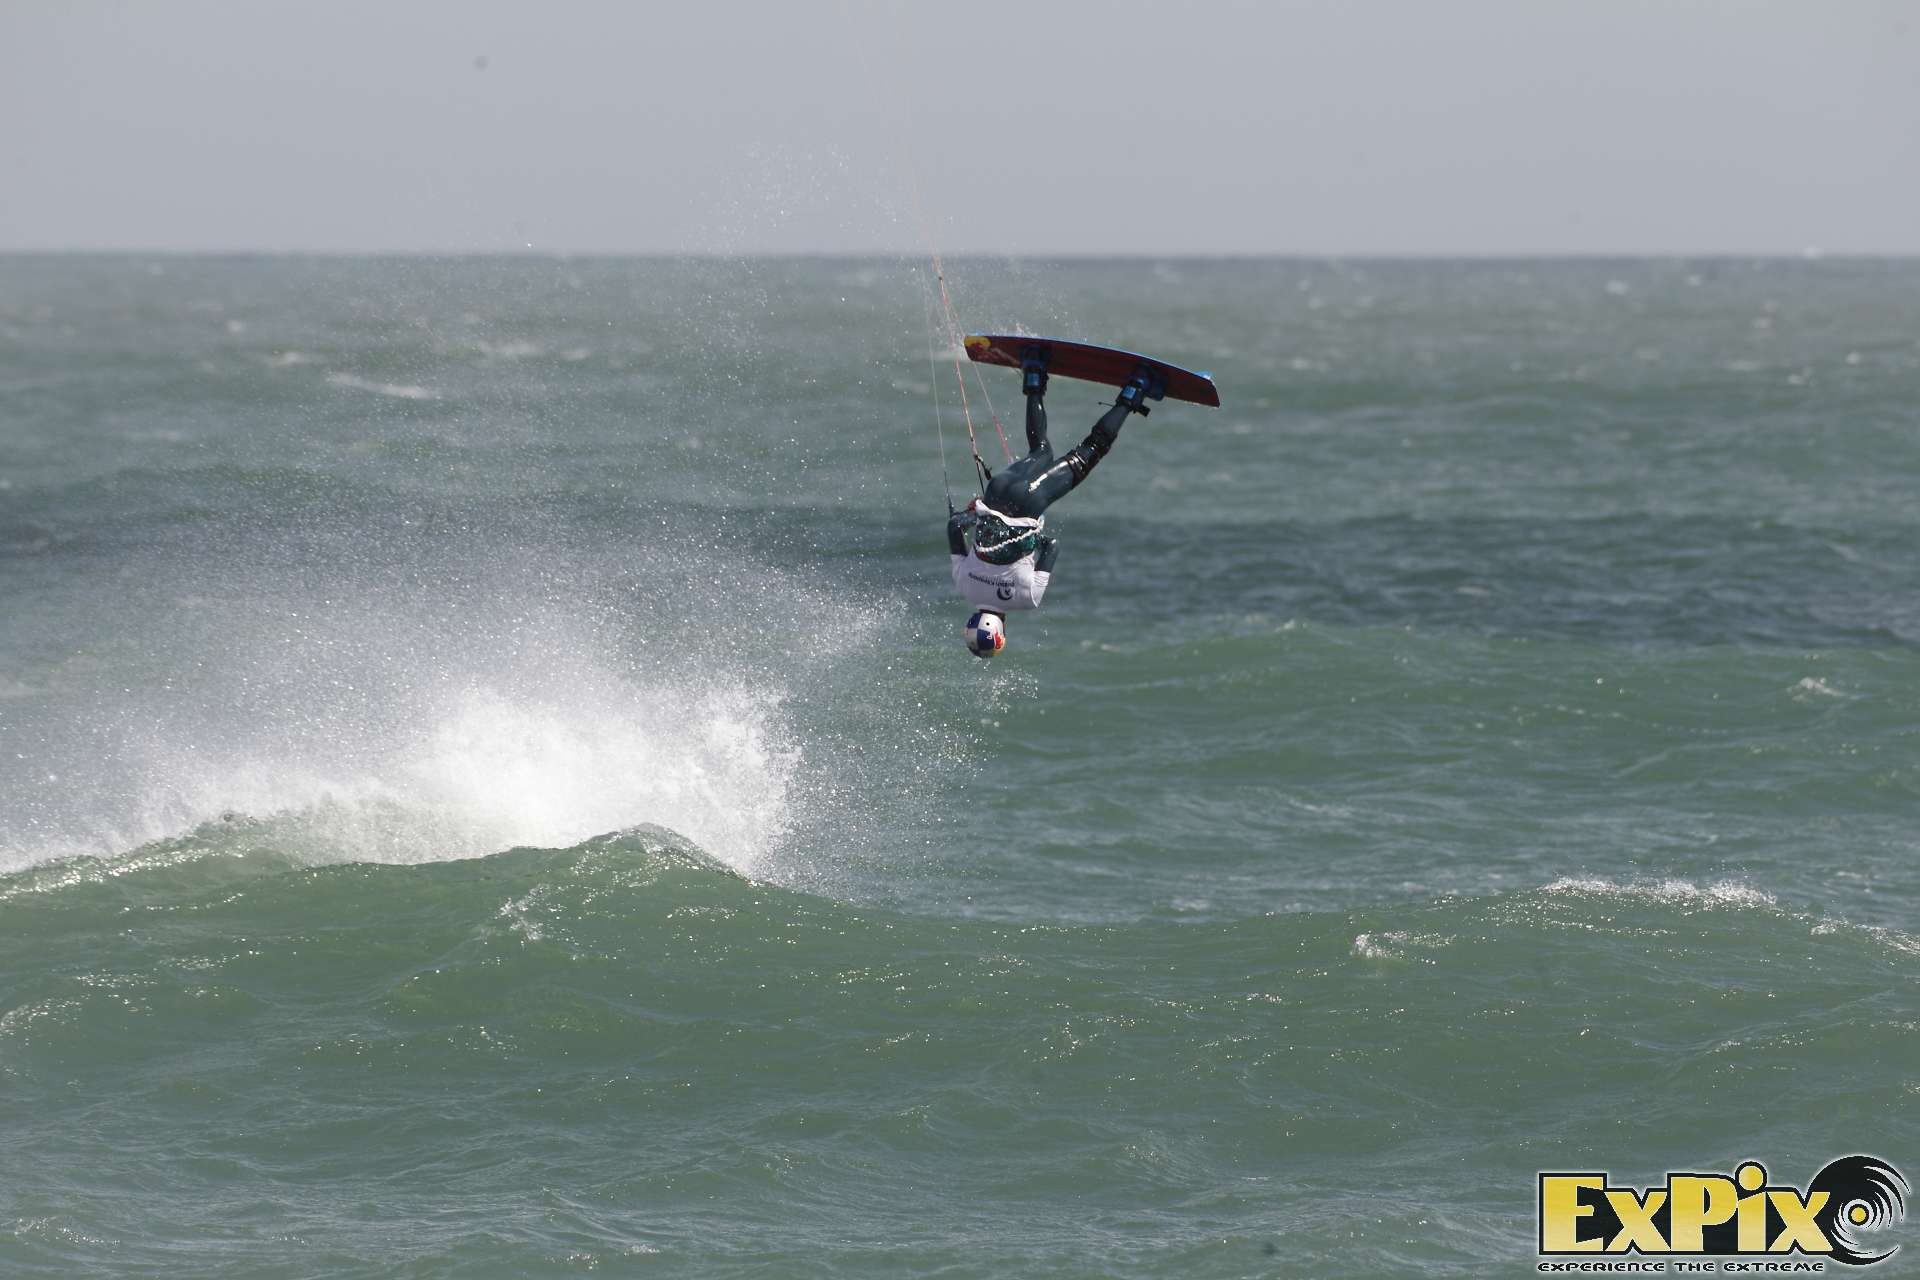 Tom Bridge off the wave British kitesurfing Championship